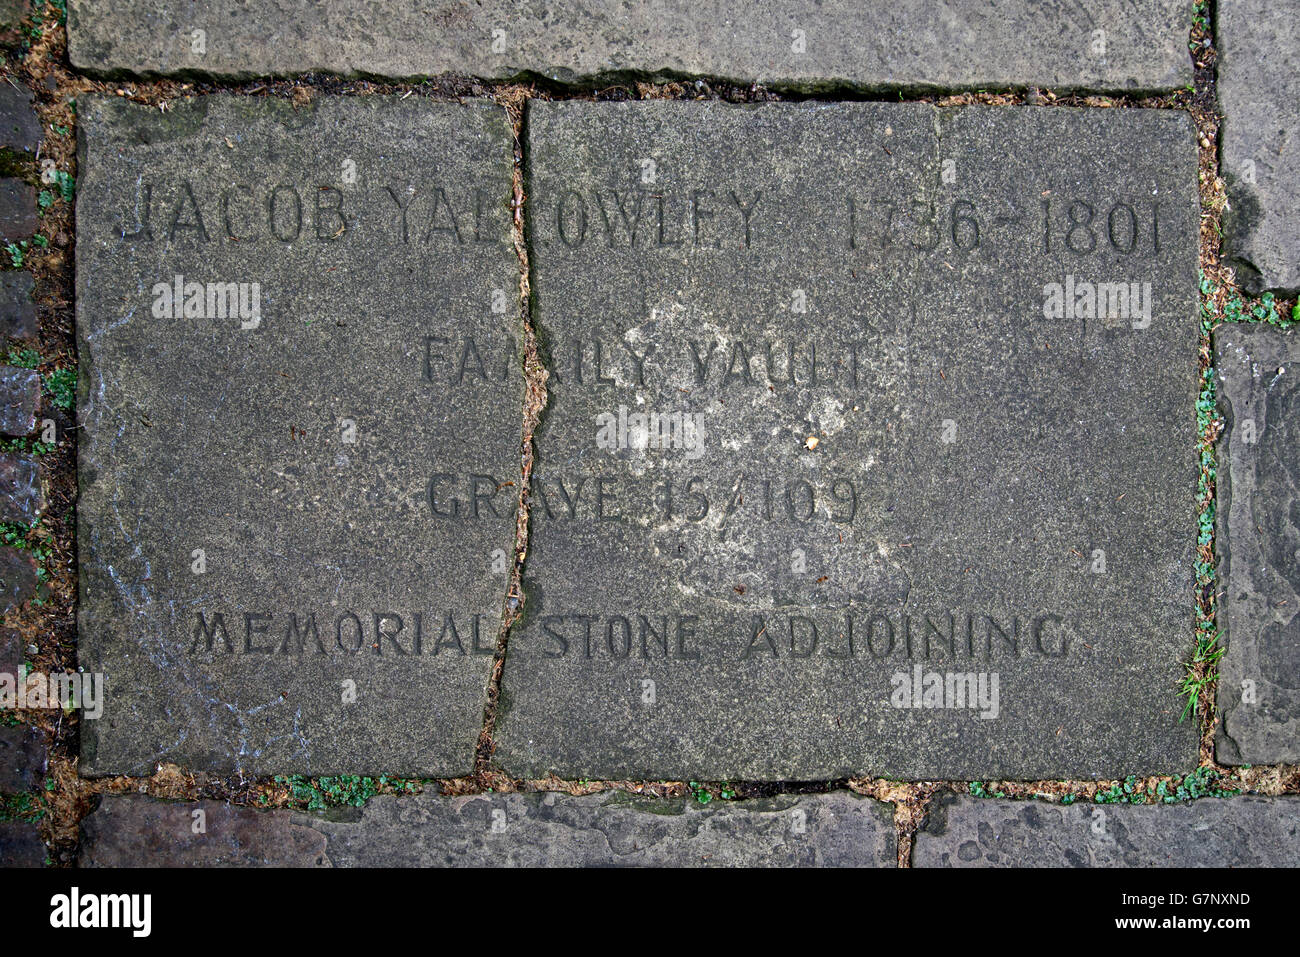 Paving stone in Bunhill Fields marking the family vault of Jacob Yallowley (1736-1801). - Stock Image